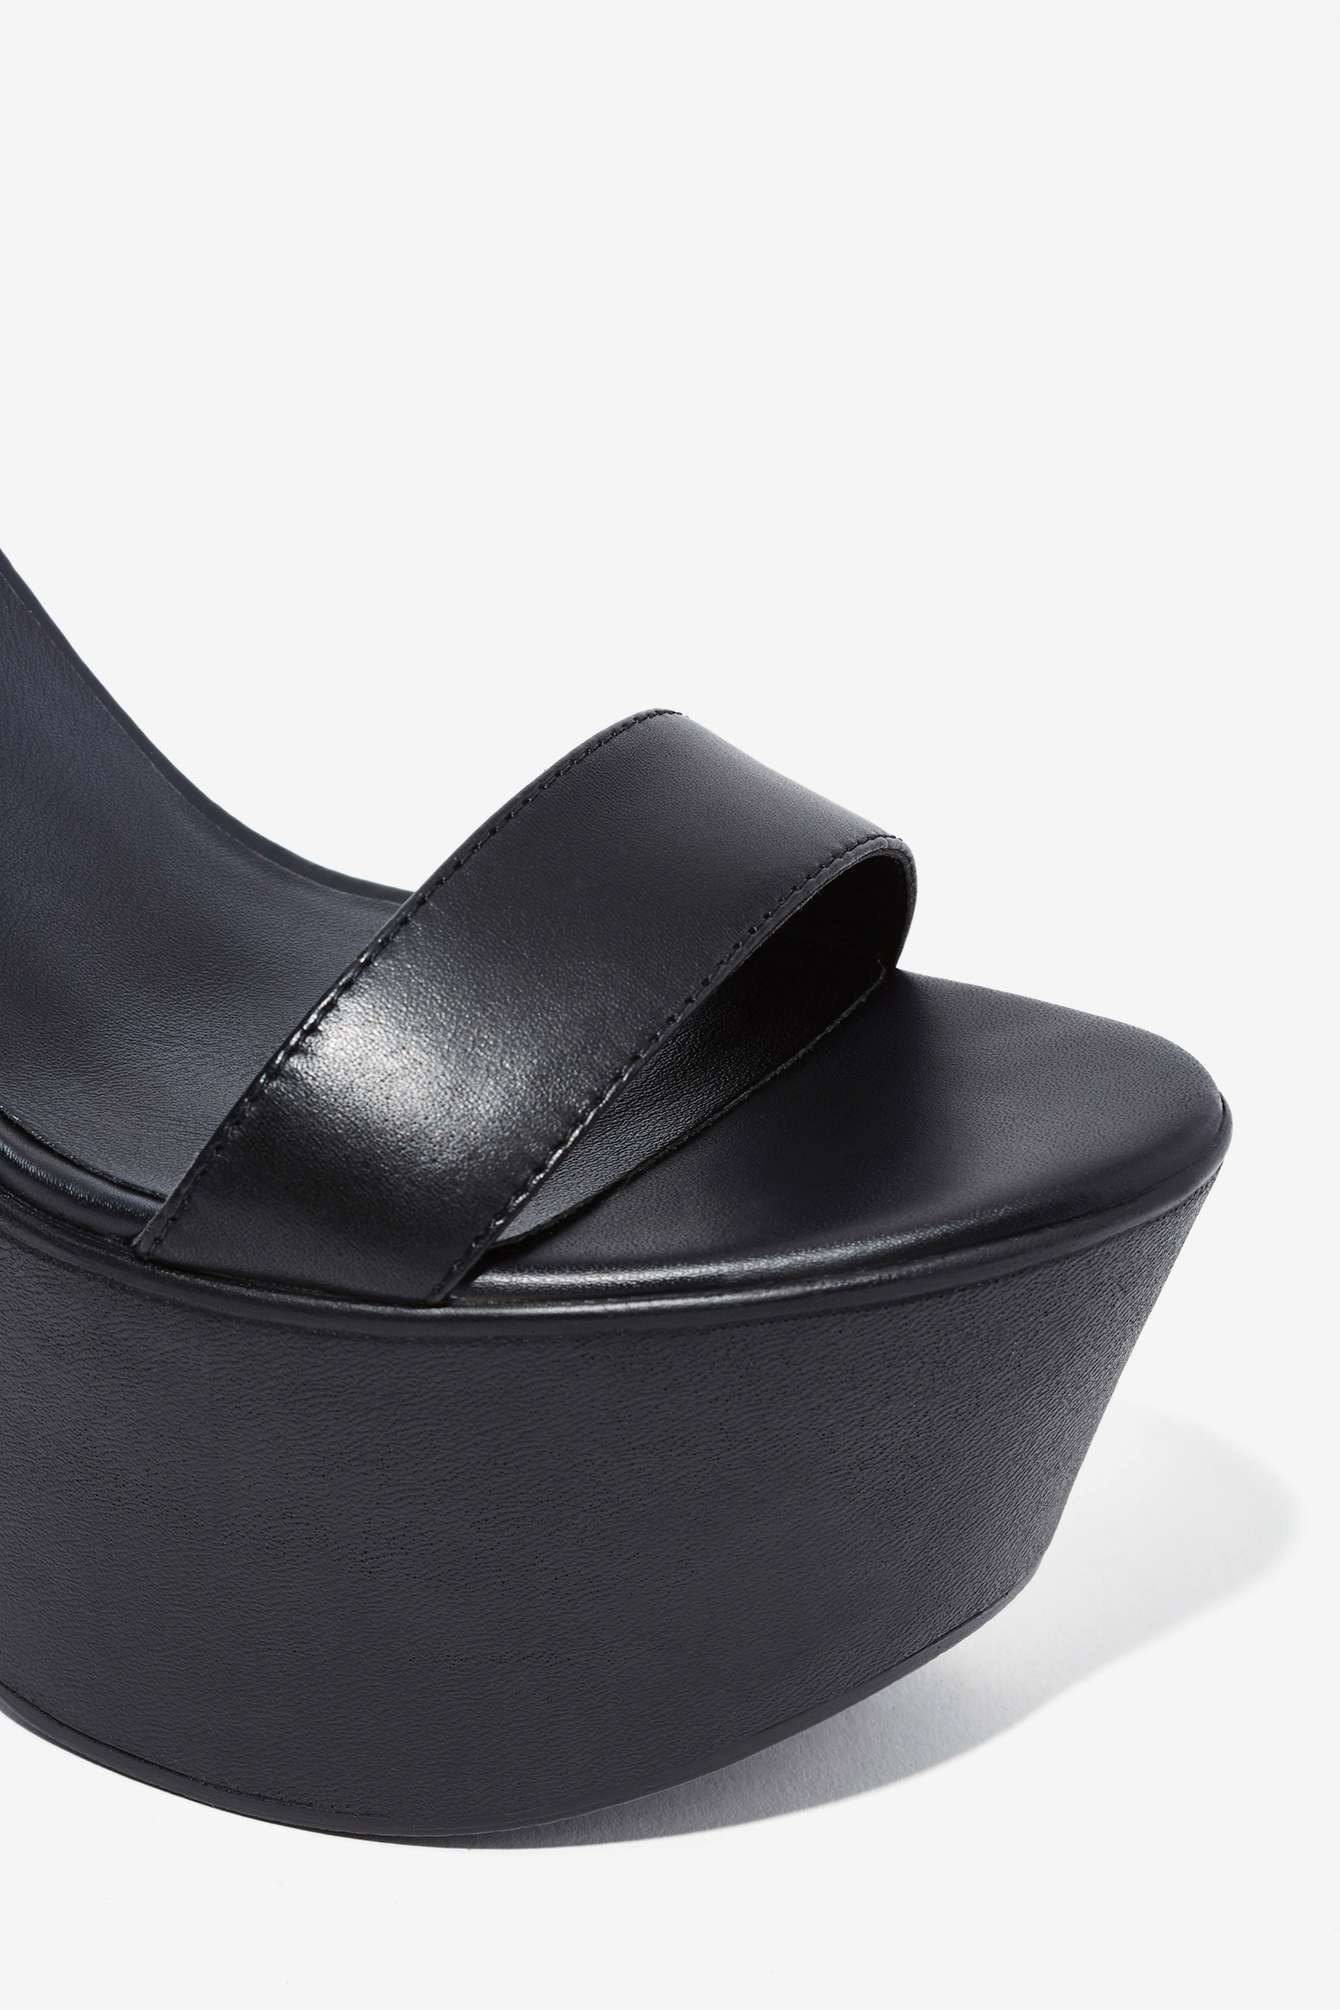 nasty gal windsor smith luxe leather platform in black | lyst